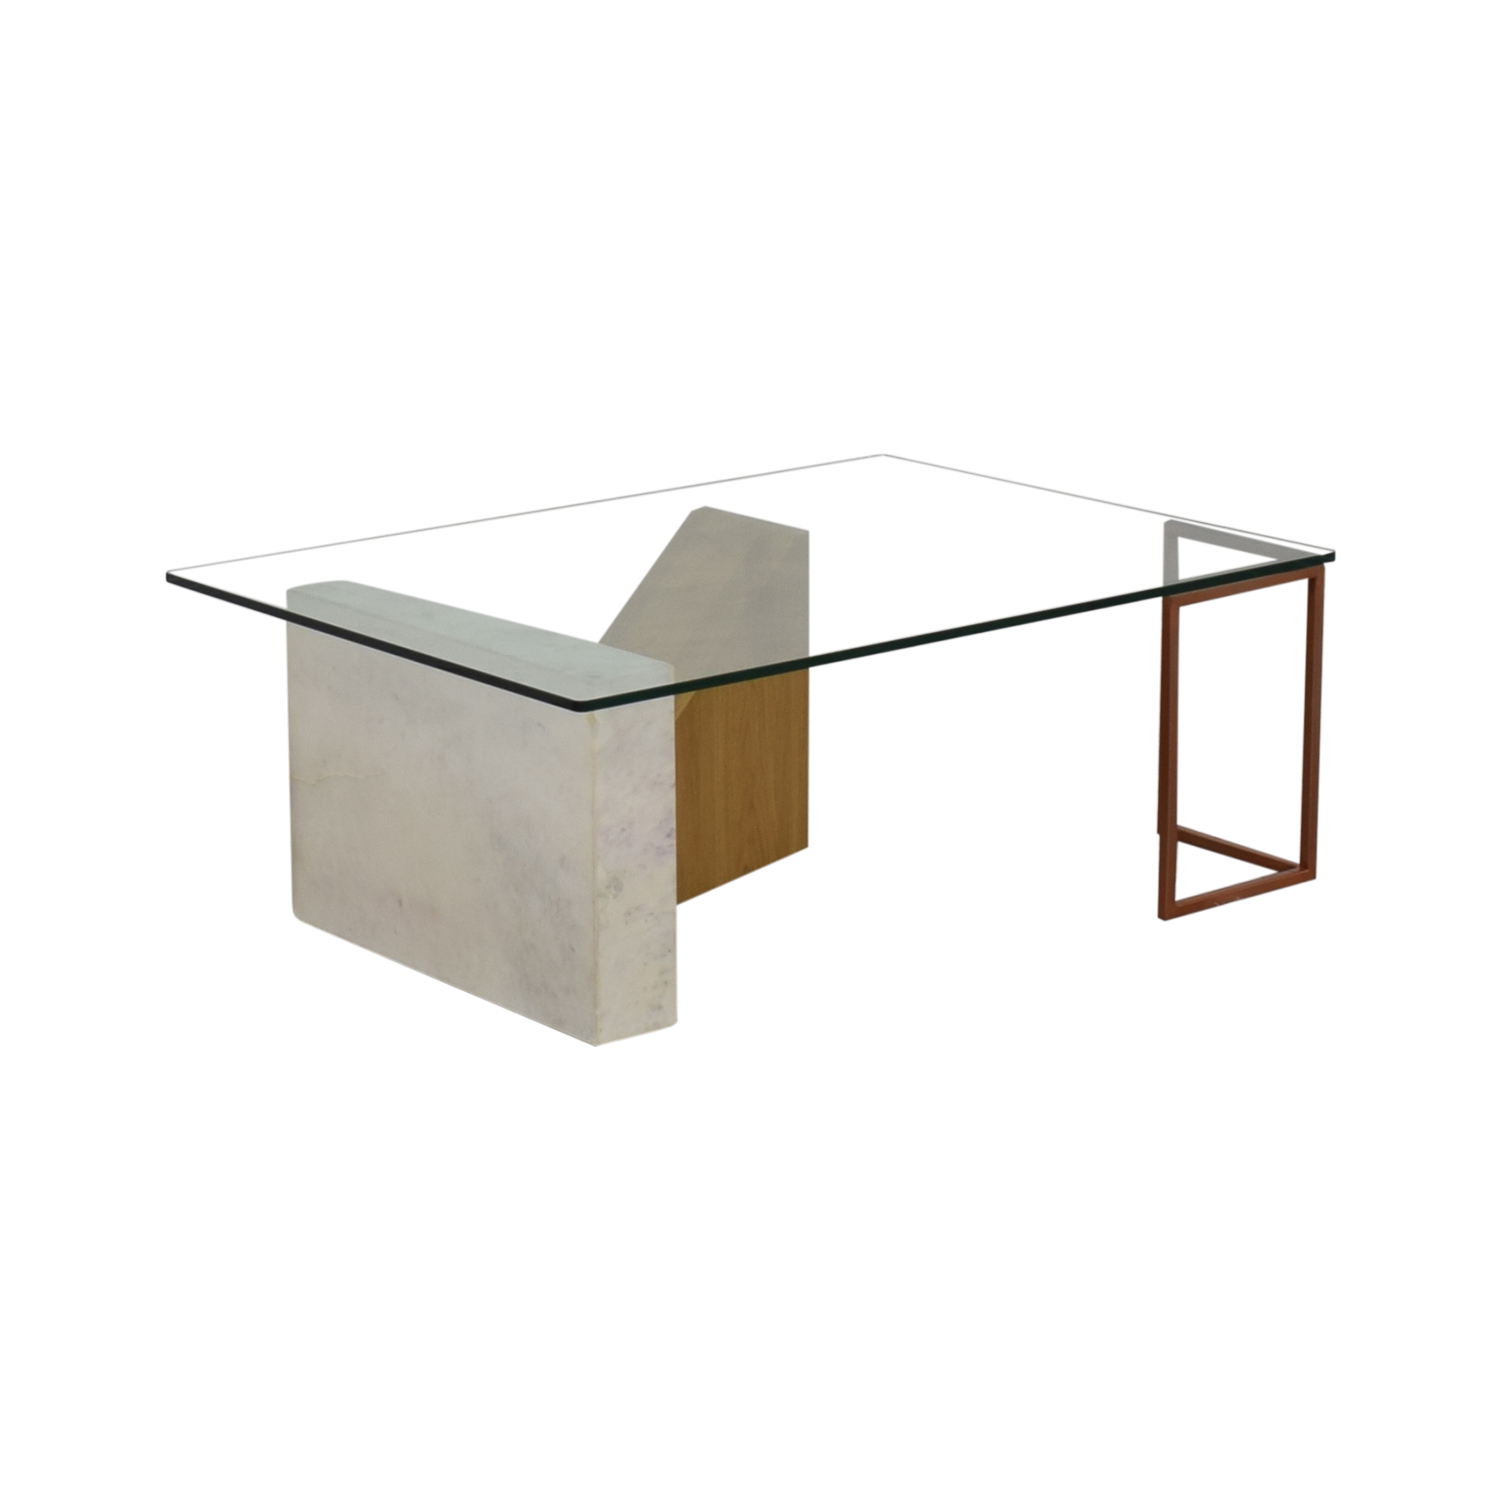 West Elm West Elm Bowie Coffee Table used